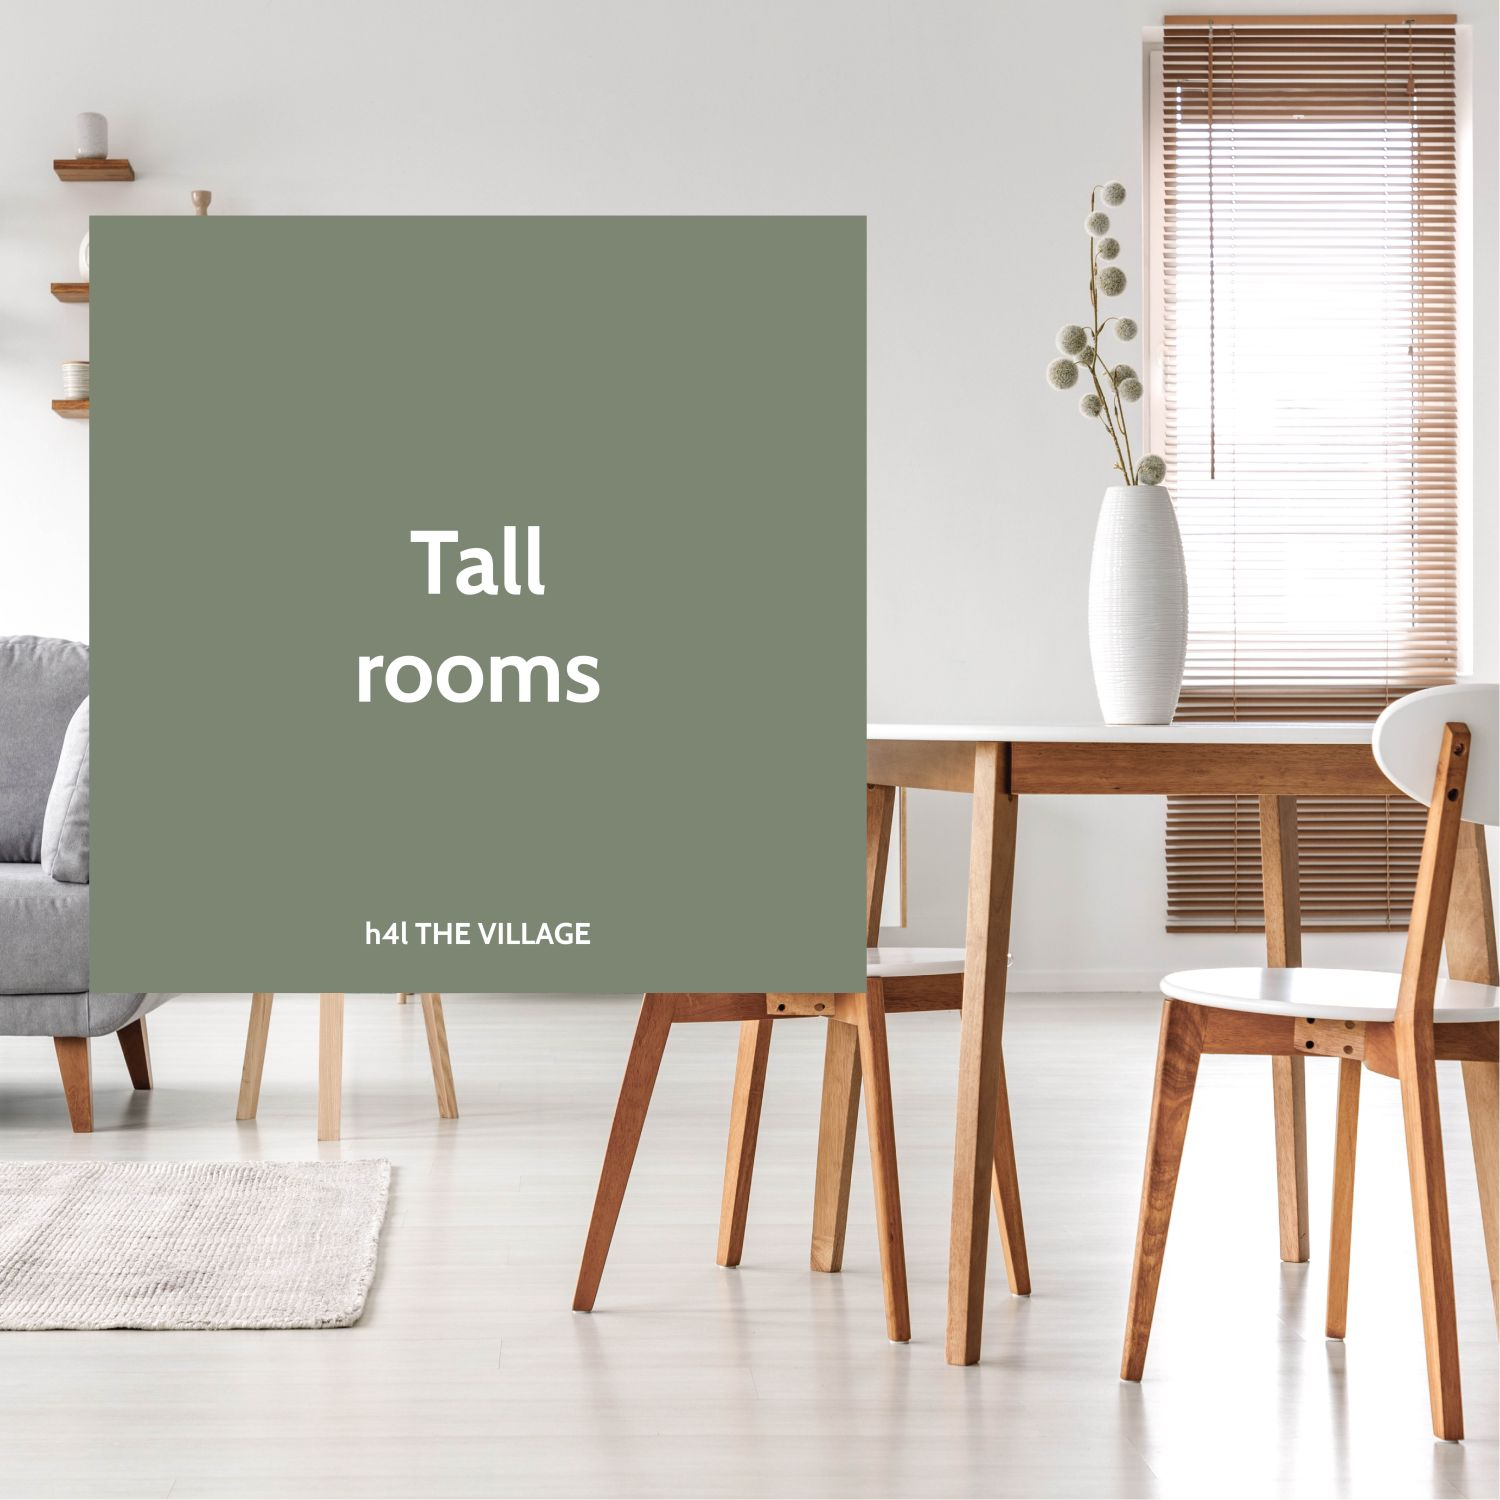 Tall rooms